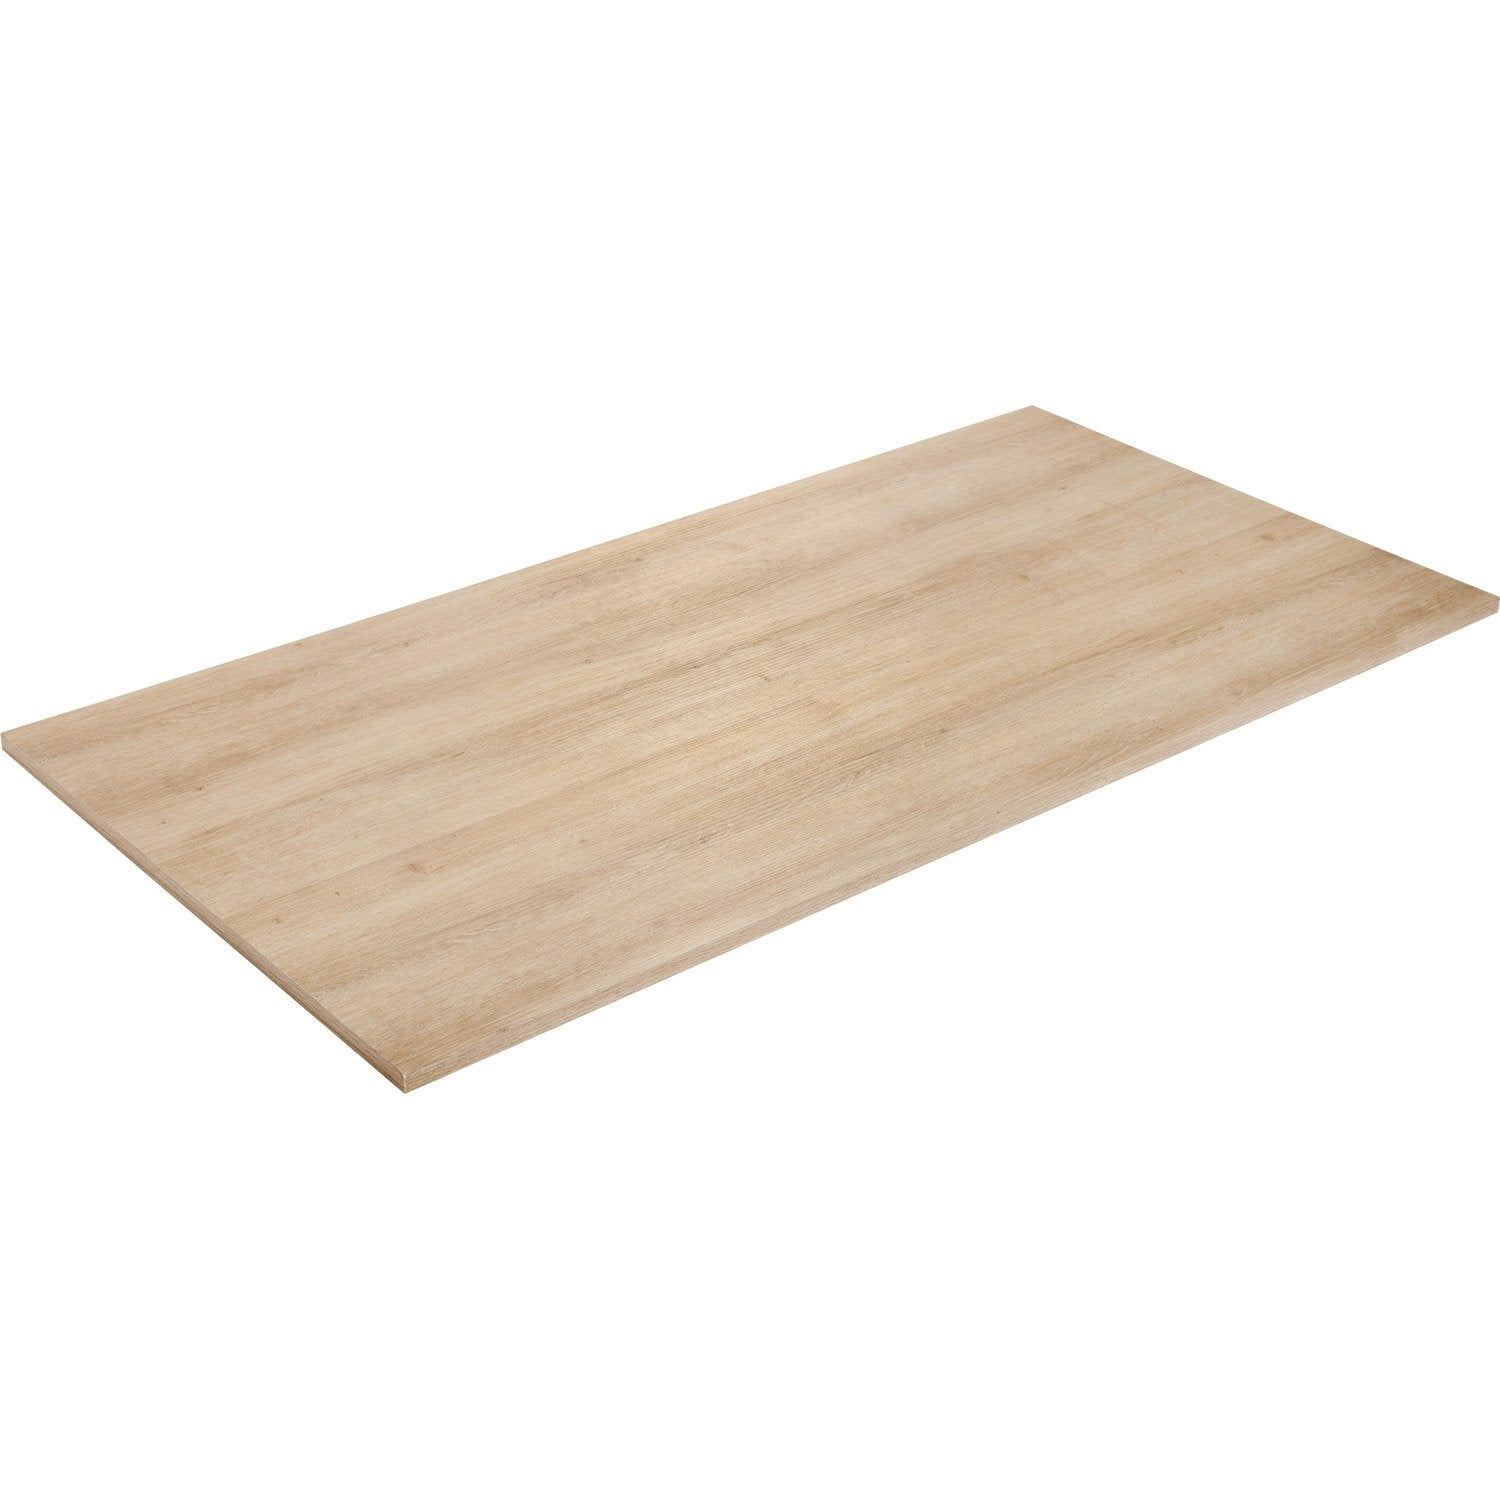 Plateau de table agglom r ch ne x cm x for Table exterieur 3 metres